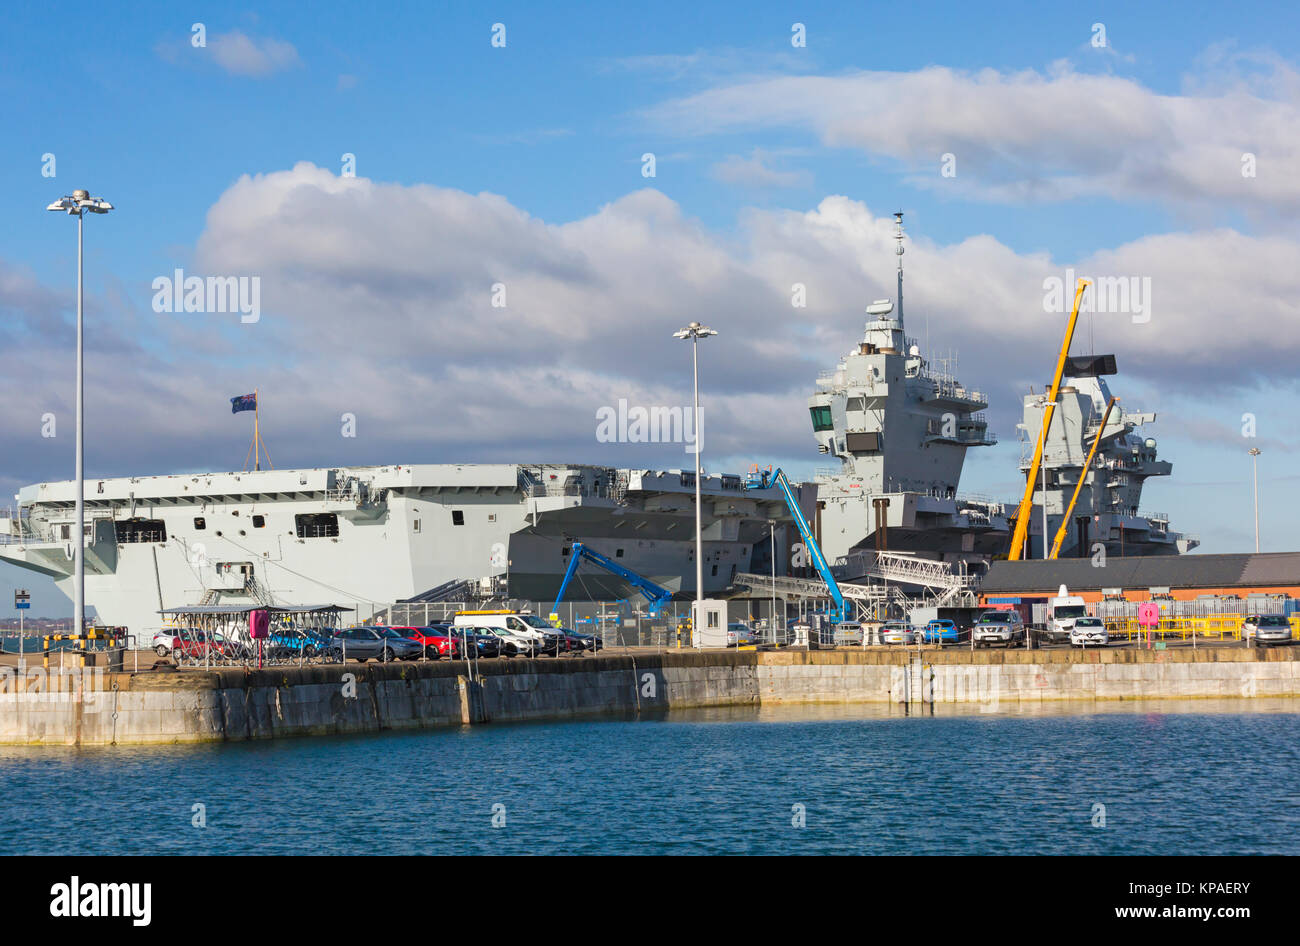 HMS Queen Elizabeth aircraft carrier seen from Portsmouth Historic Dockyard, Portsmouth, Hants UK in December Stock Photo